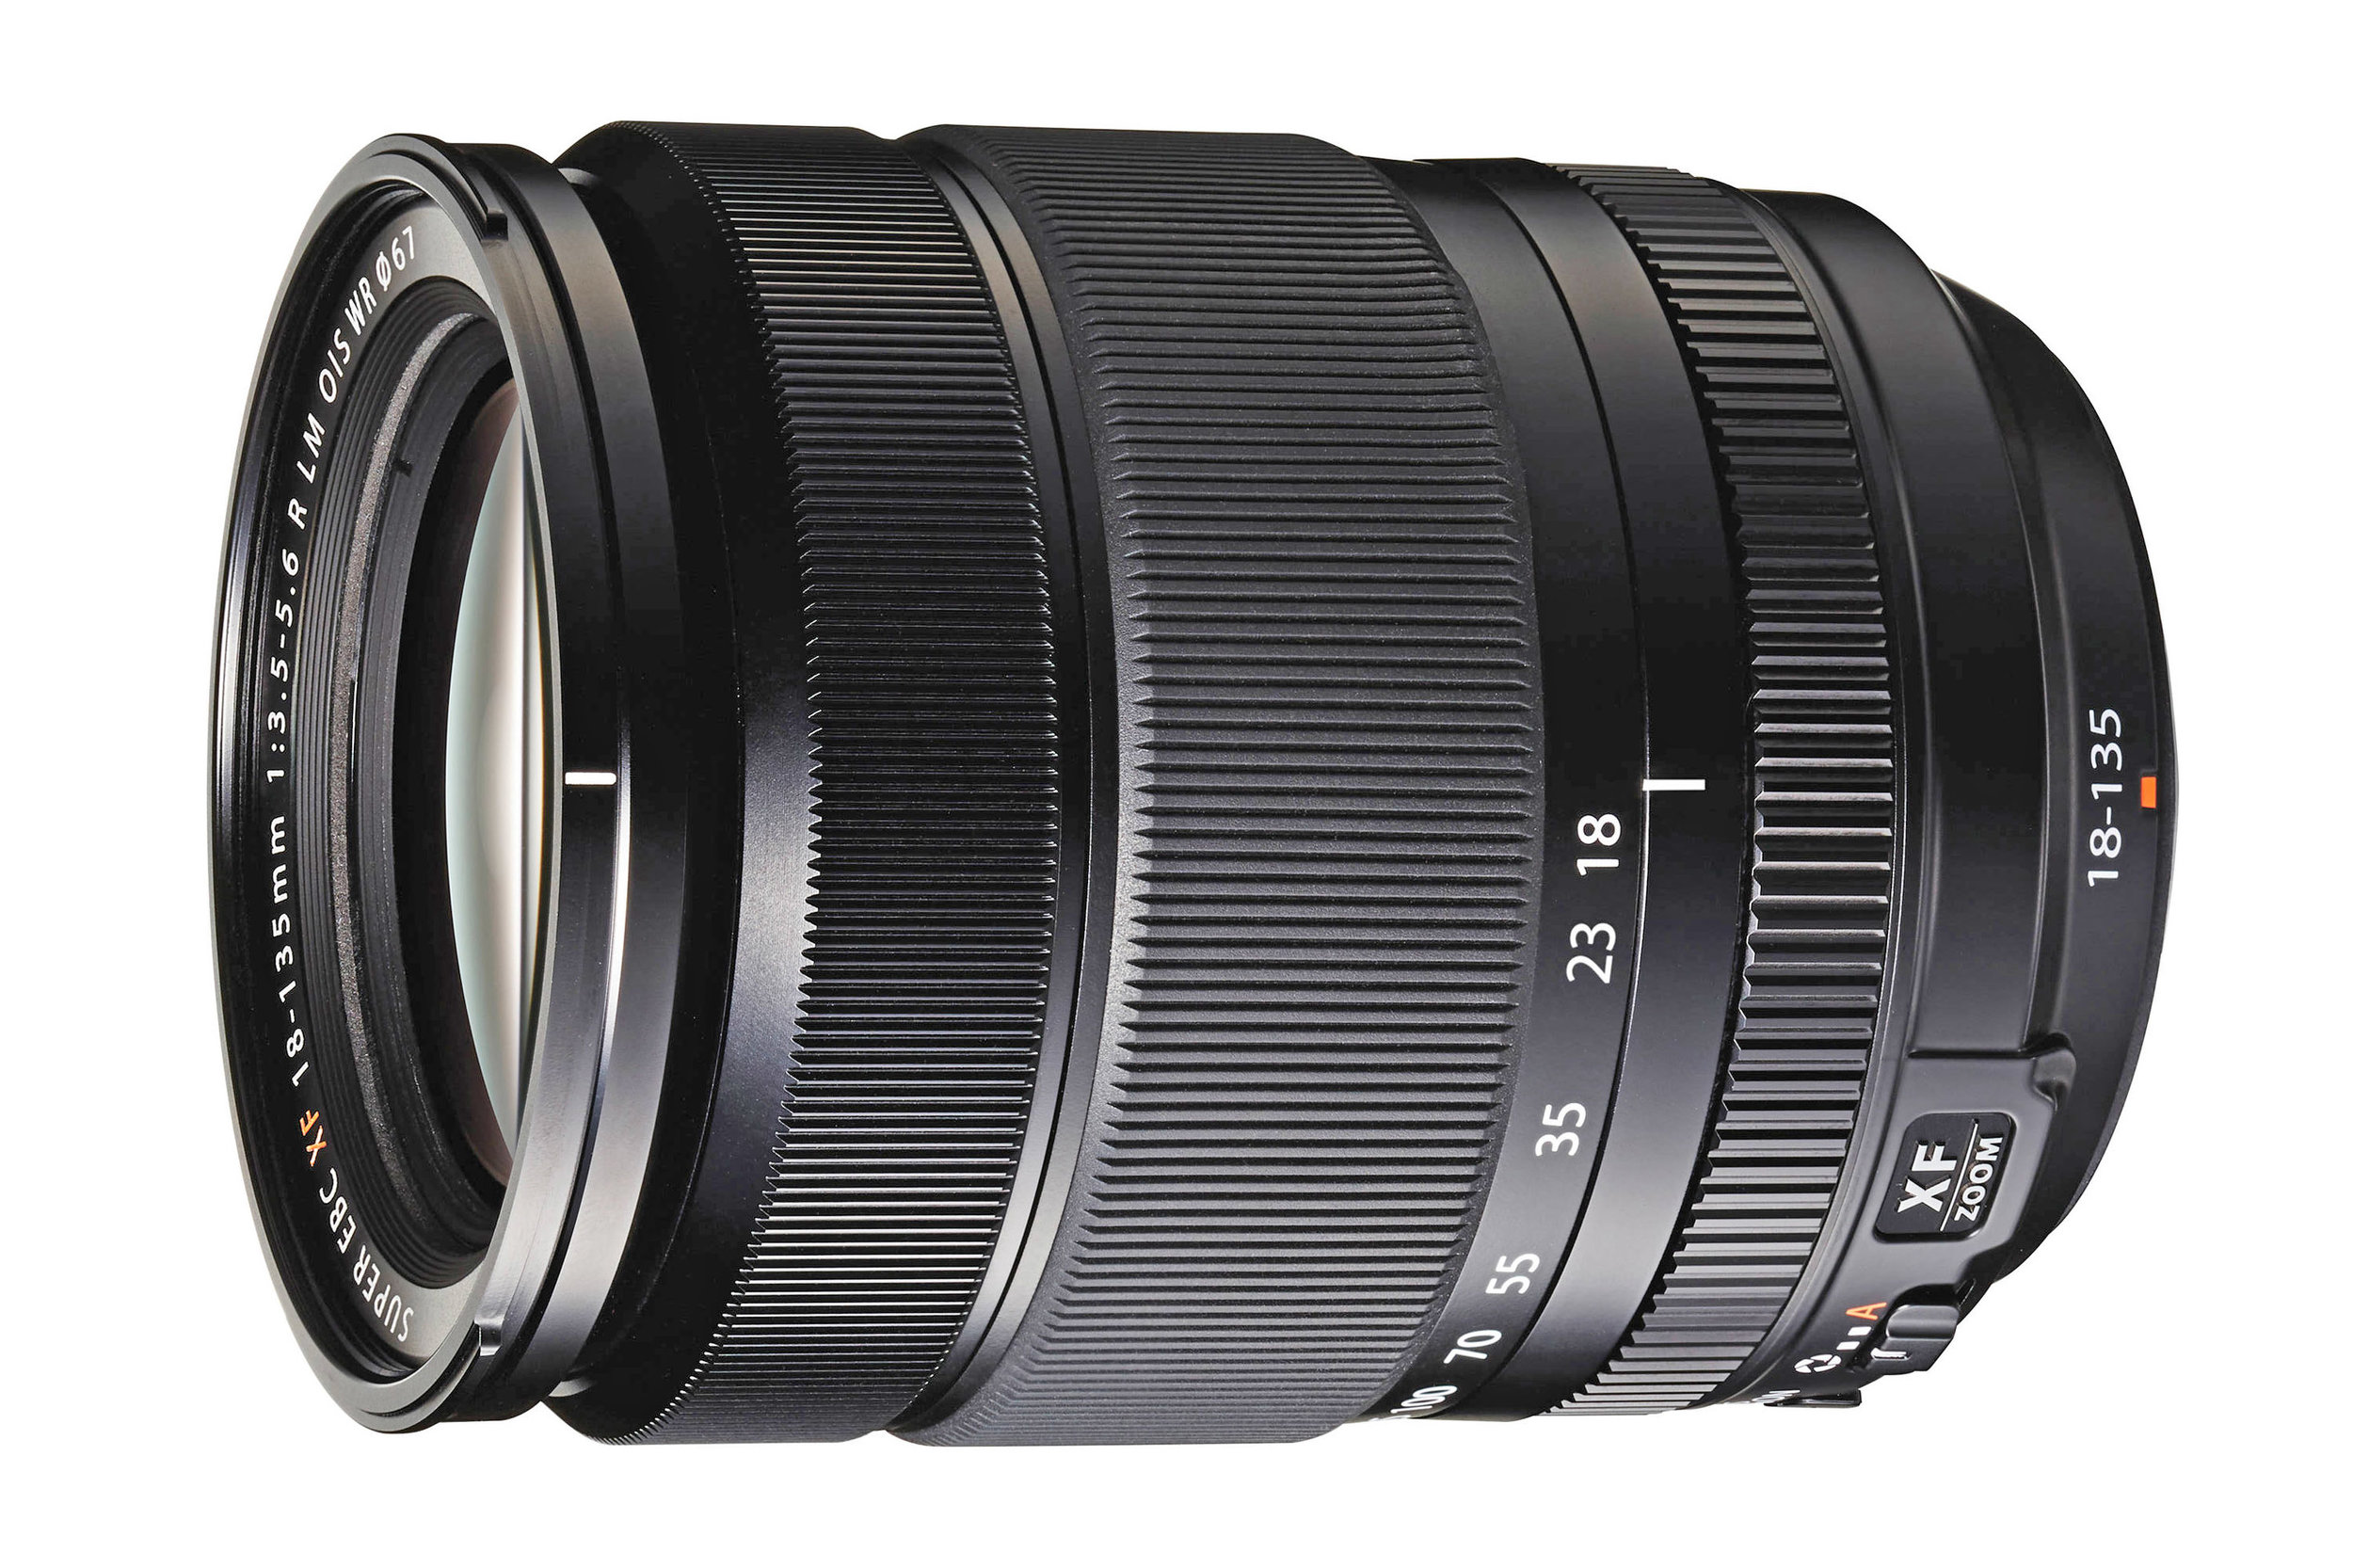 The Fujifilm XF 18-135mm f/3.5-5.6 R LM OIS WR lens for mirrorless cameras